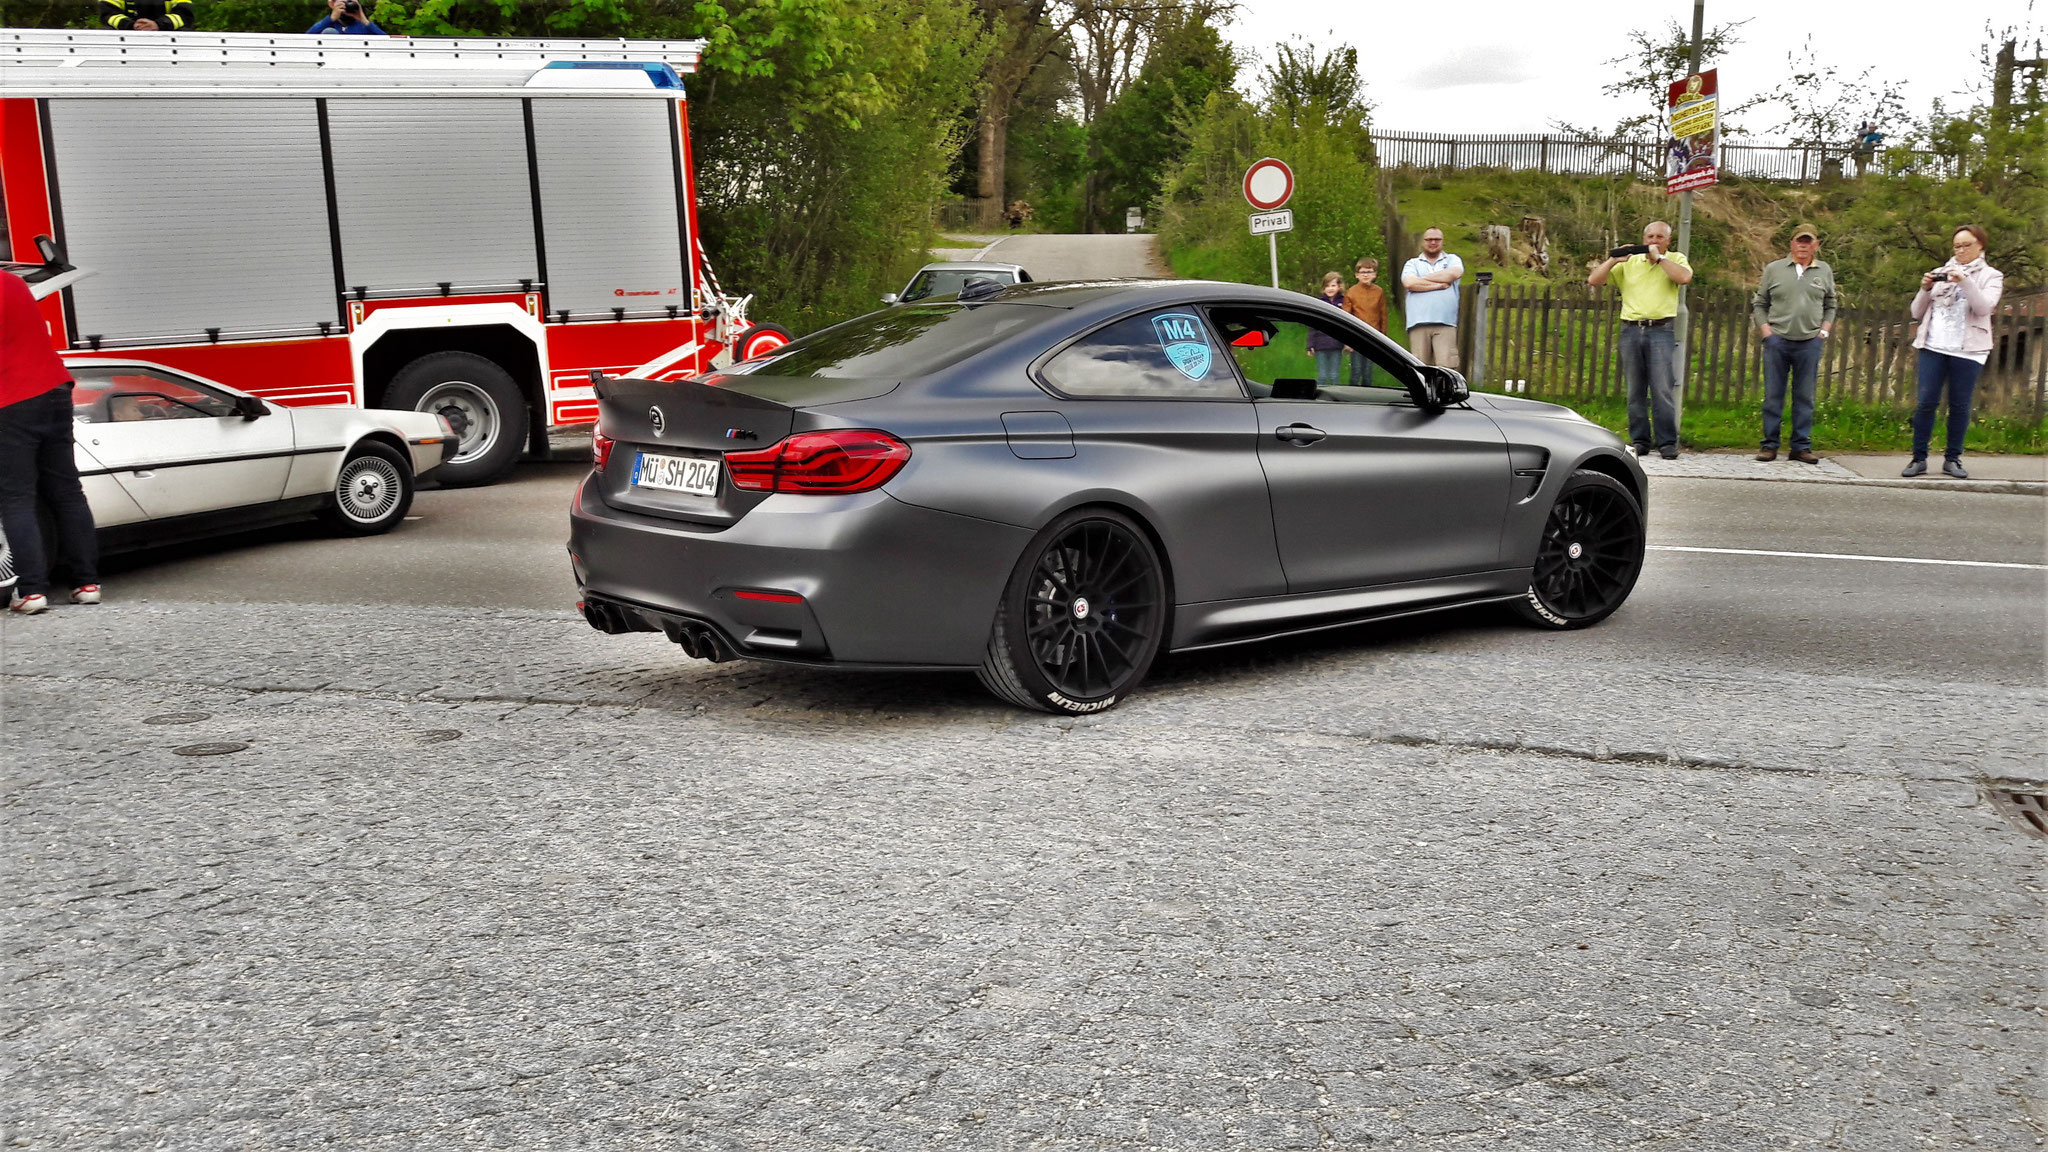 BMW M4 G-Power - MÜ-SH-204